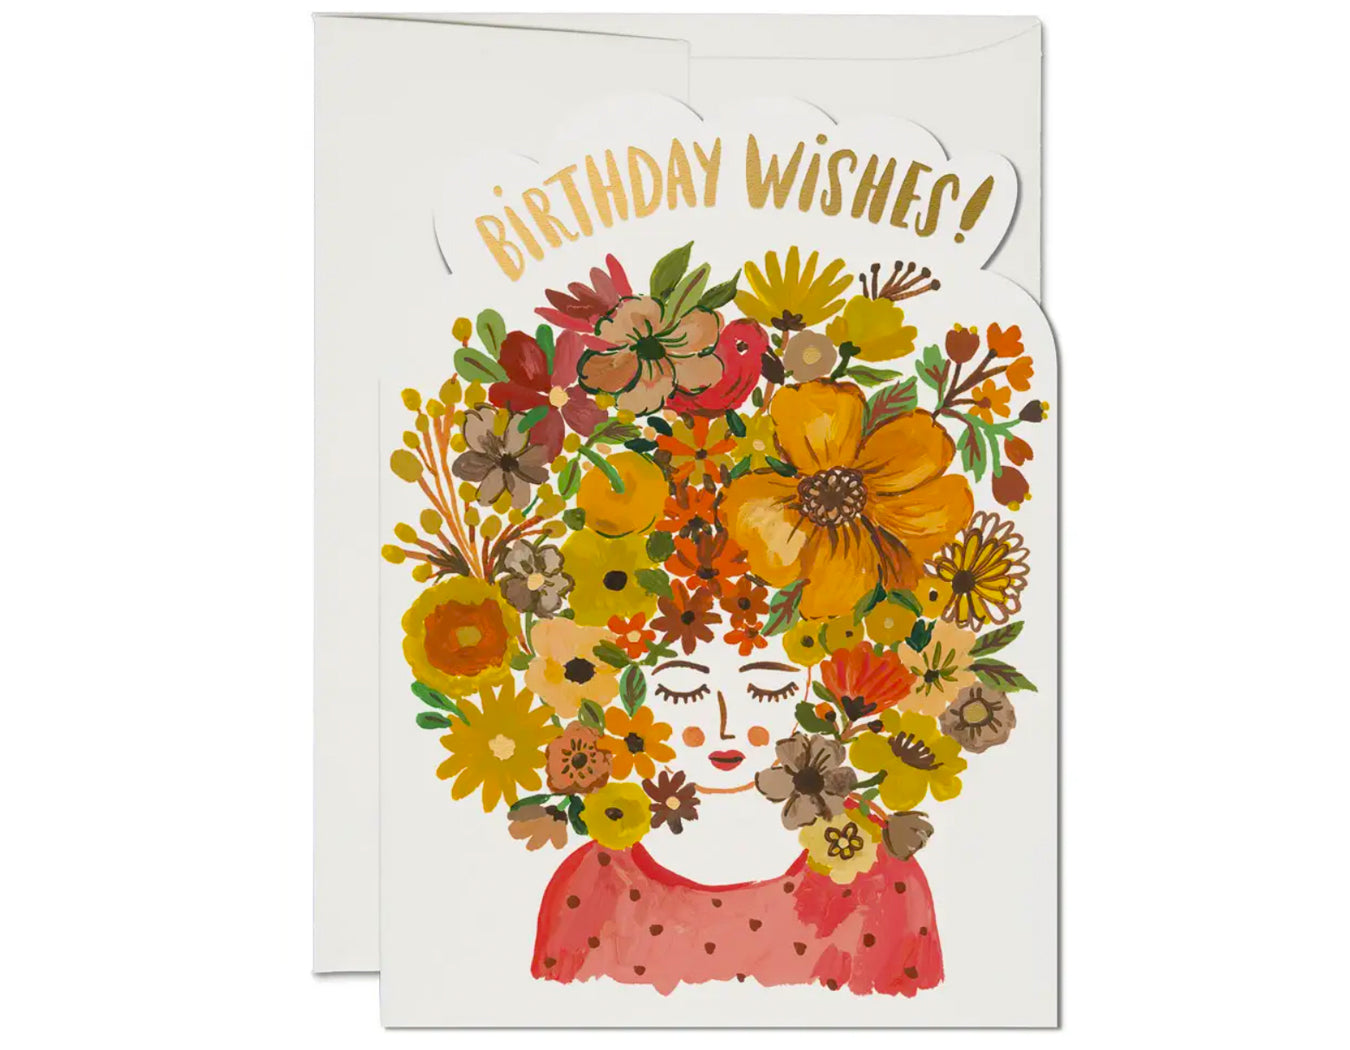 die cut card featuring a woman with floral tresses. birthday wishes in gold foil across the top.